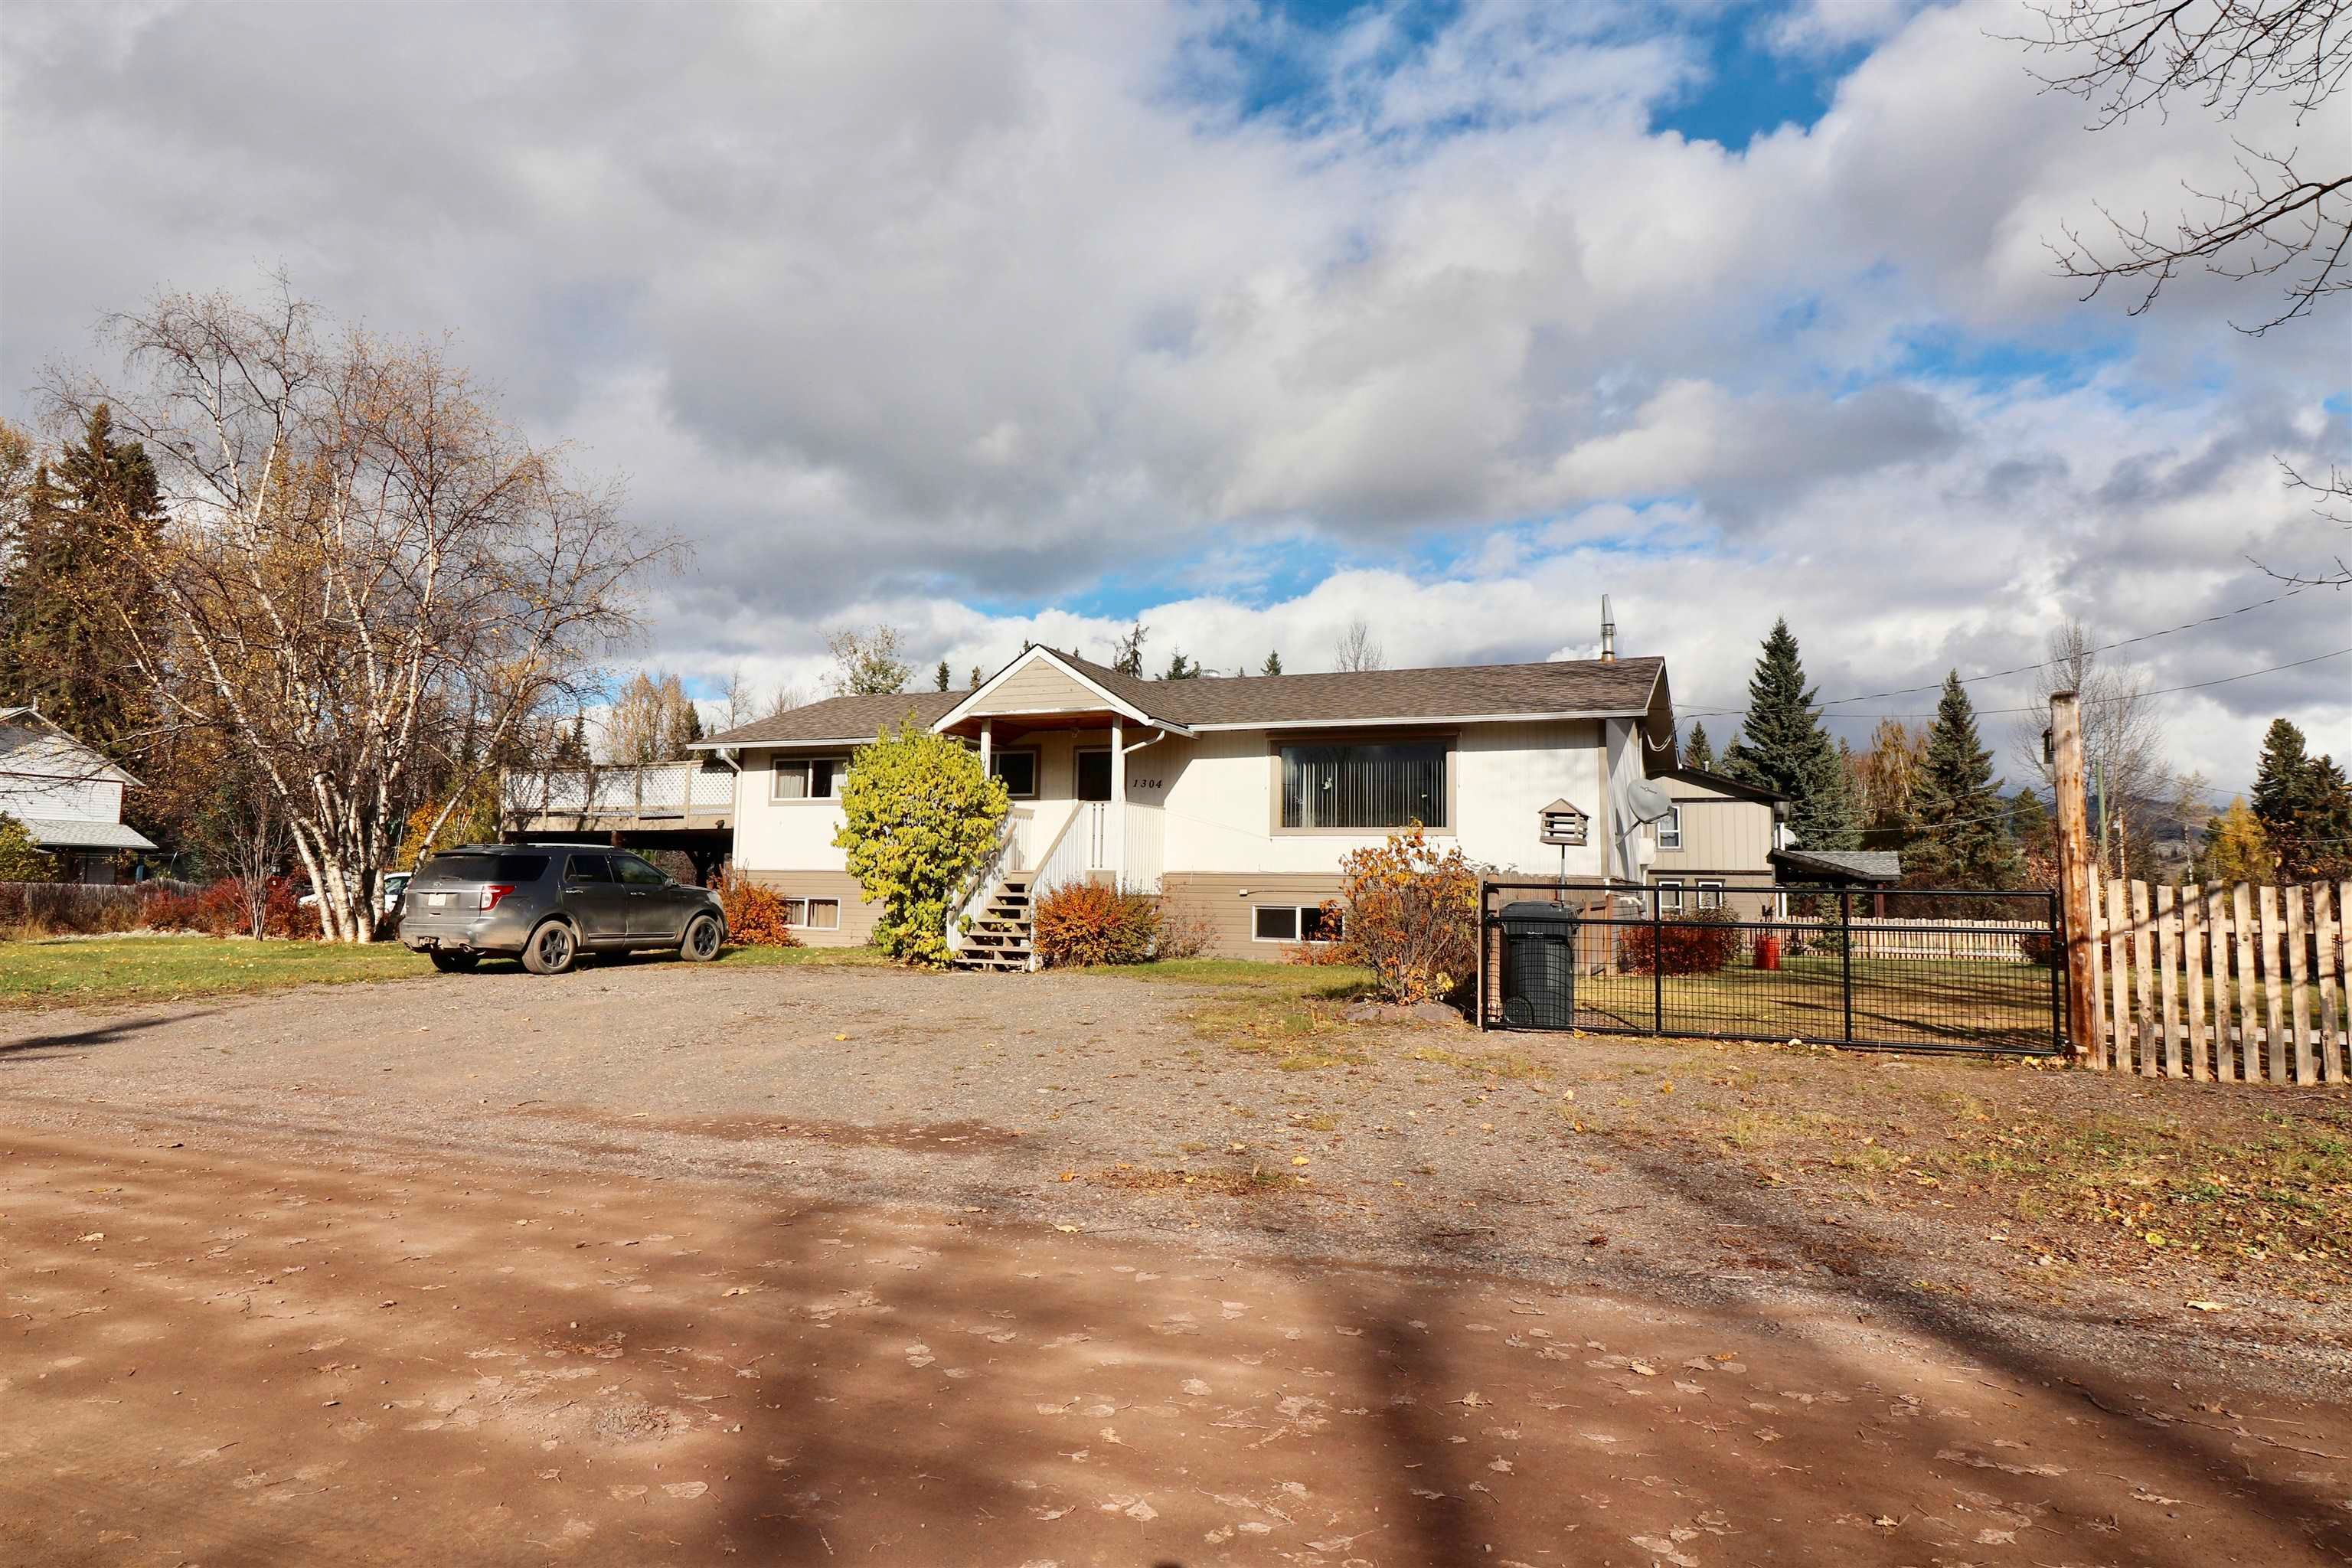 Main Photo: 1304 DOGWOOD Street: Telkwa House for sale (Smithers And Area (Zone 54))  : MLS®# R2623500